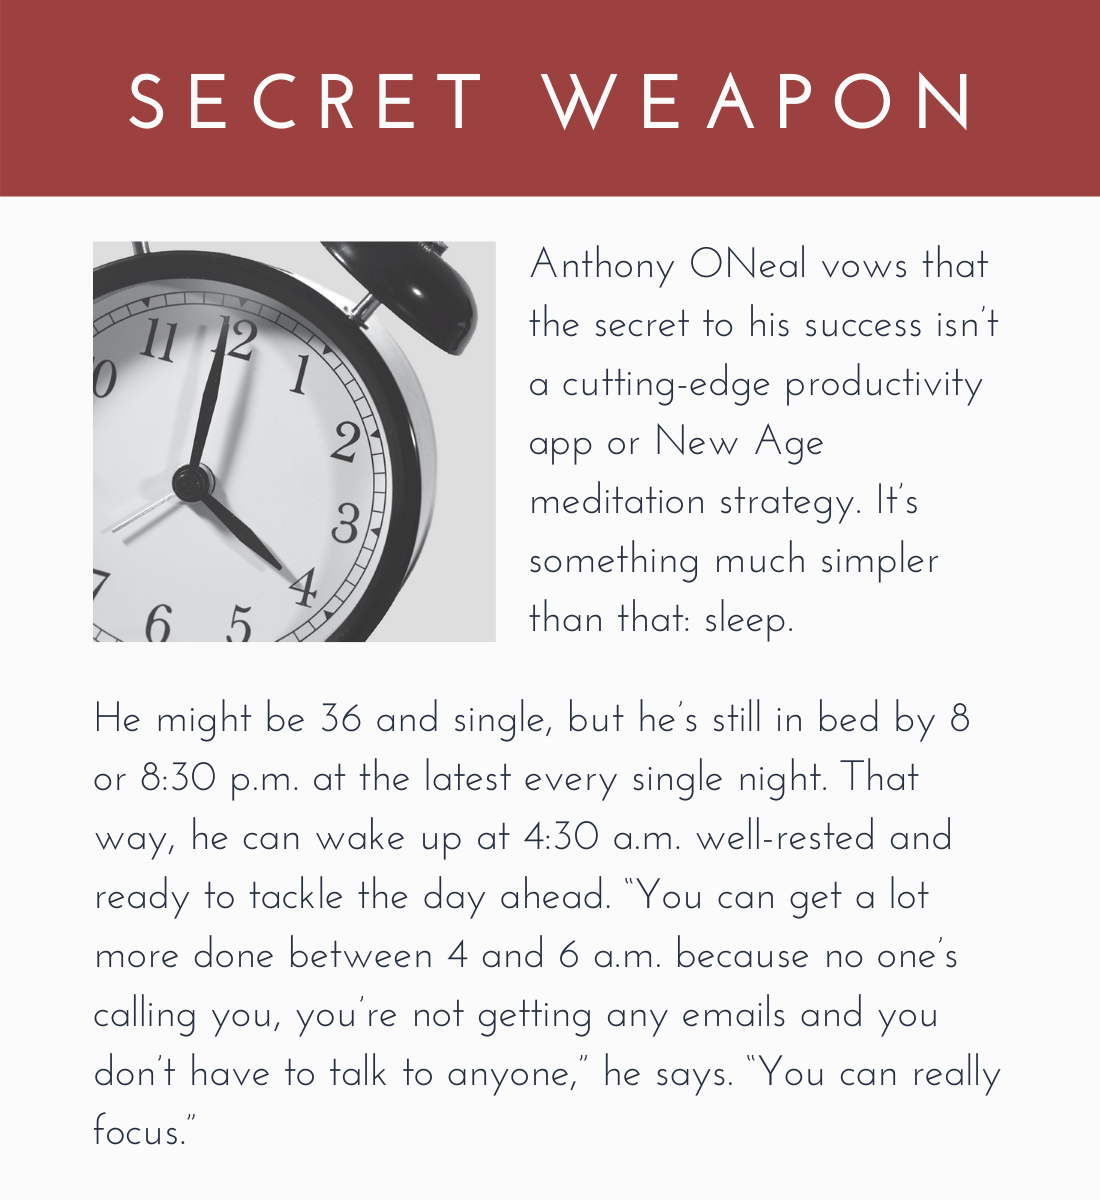 """Secret Weapon:  Anthony ONeal vows that the secret to his success isn't a cutting-edge productivity app or New Age meditation strategy. It's something much simpler than that: sleep.  He might be 36 and single, but he's still in bed by 8 or 8:30 p.m. at the latest every single night. That way, he can wake up at 4:30 a.m. well-rested and ready to tackle the day ahead. """"You can get a lot more done between 4 and 6 a.m. because no one's calling you, you're not getting any emails and you don't have to talk to anyone,"""" he says. """"You can really focus."""""""